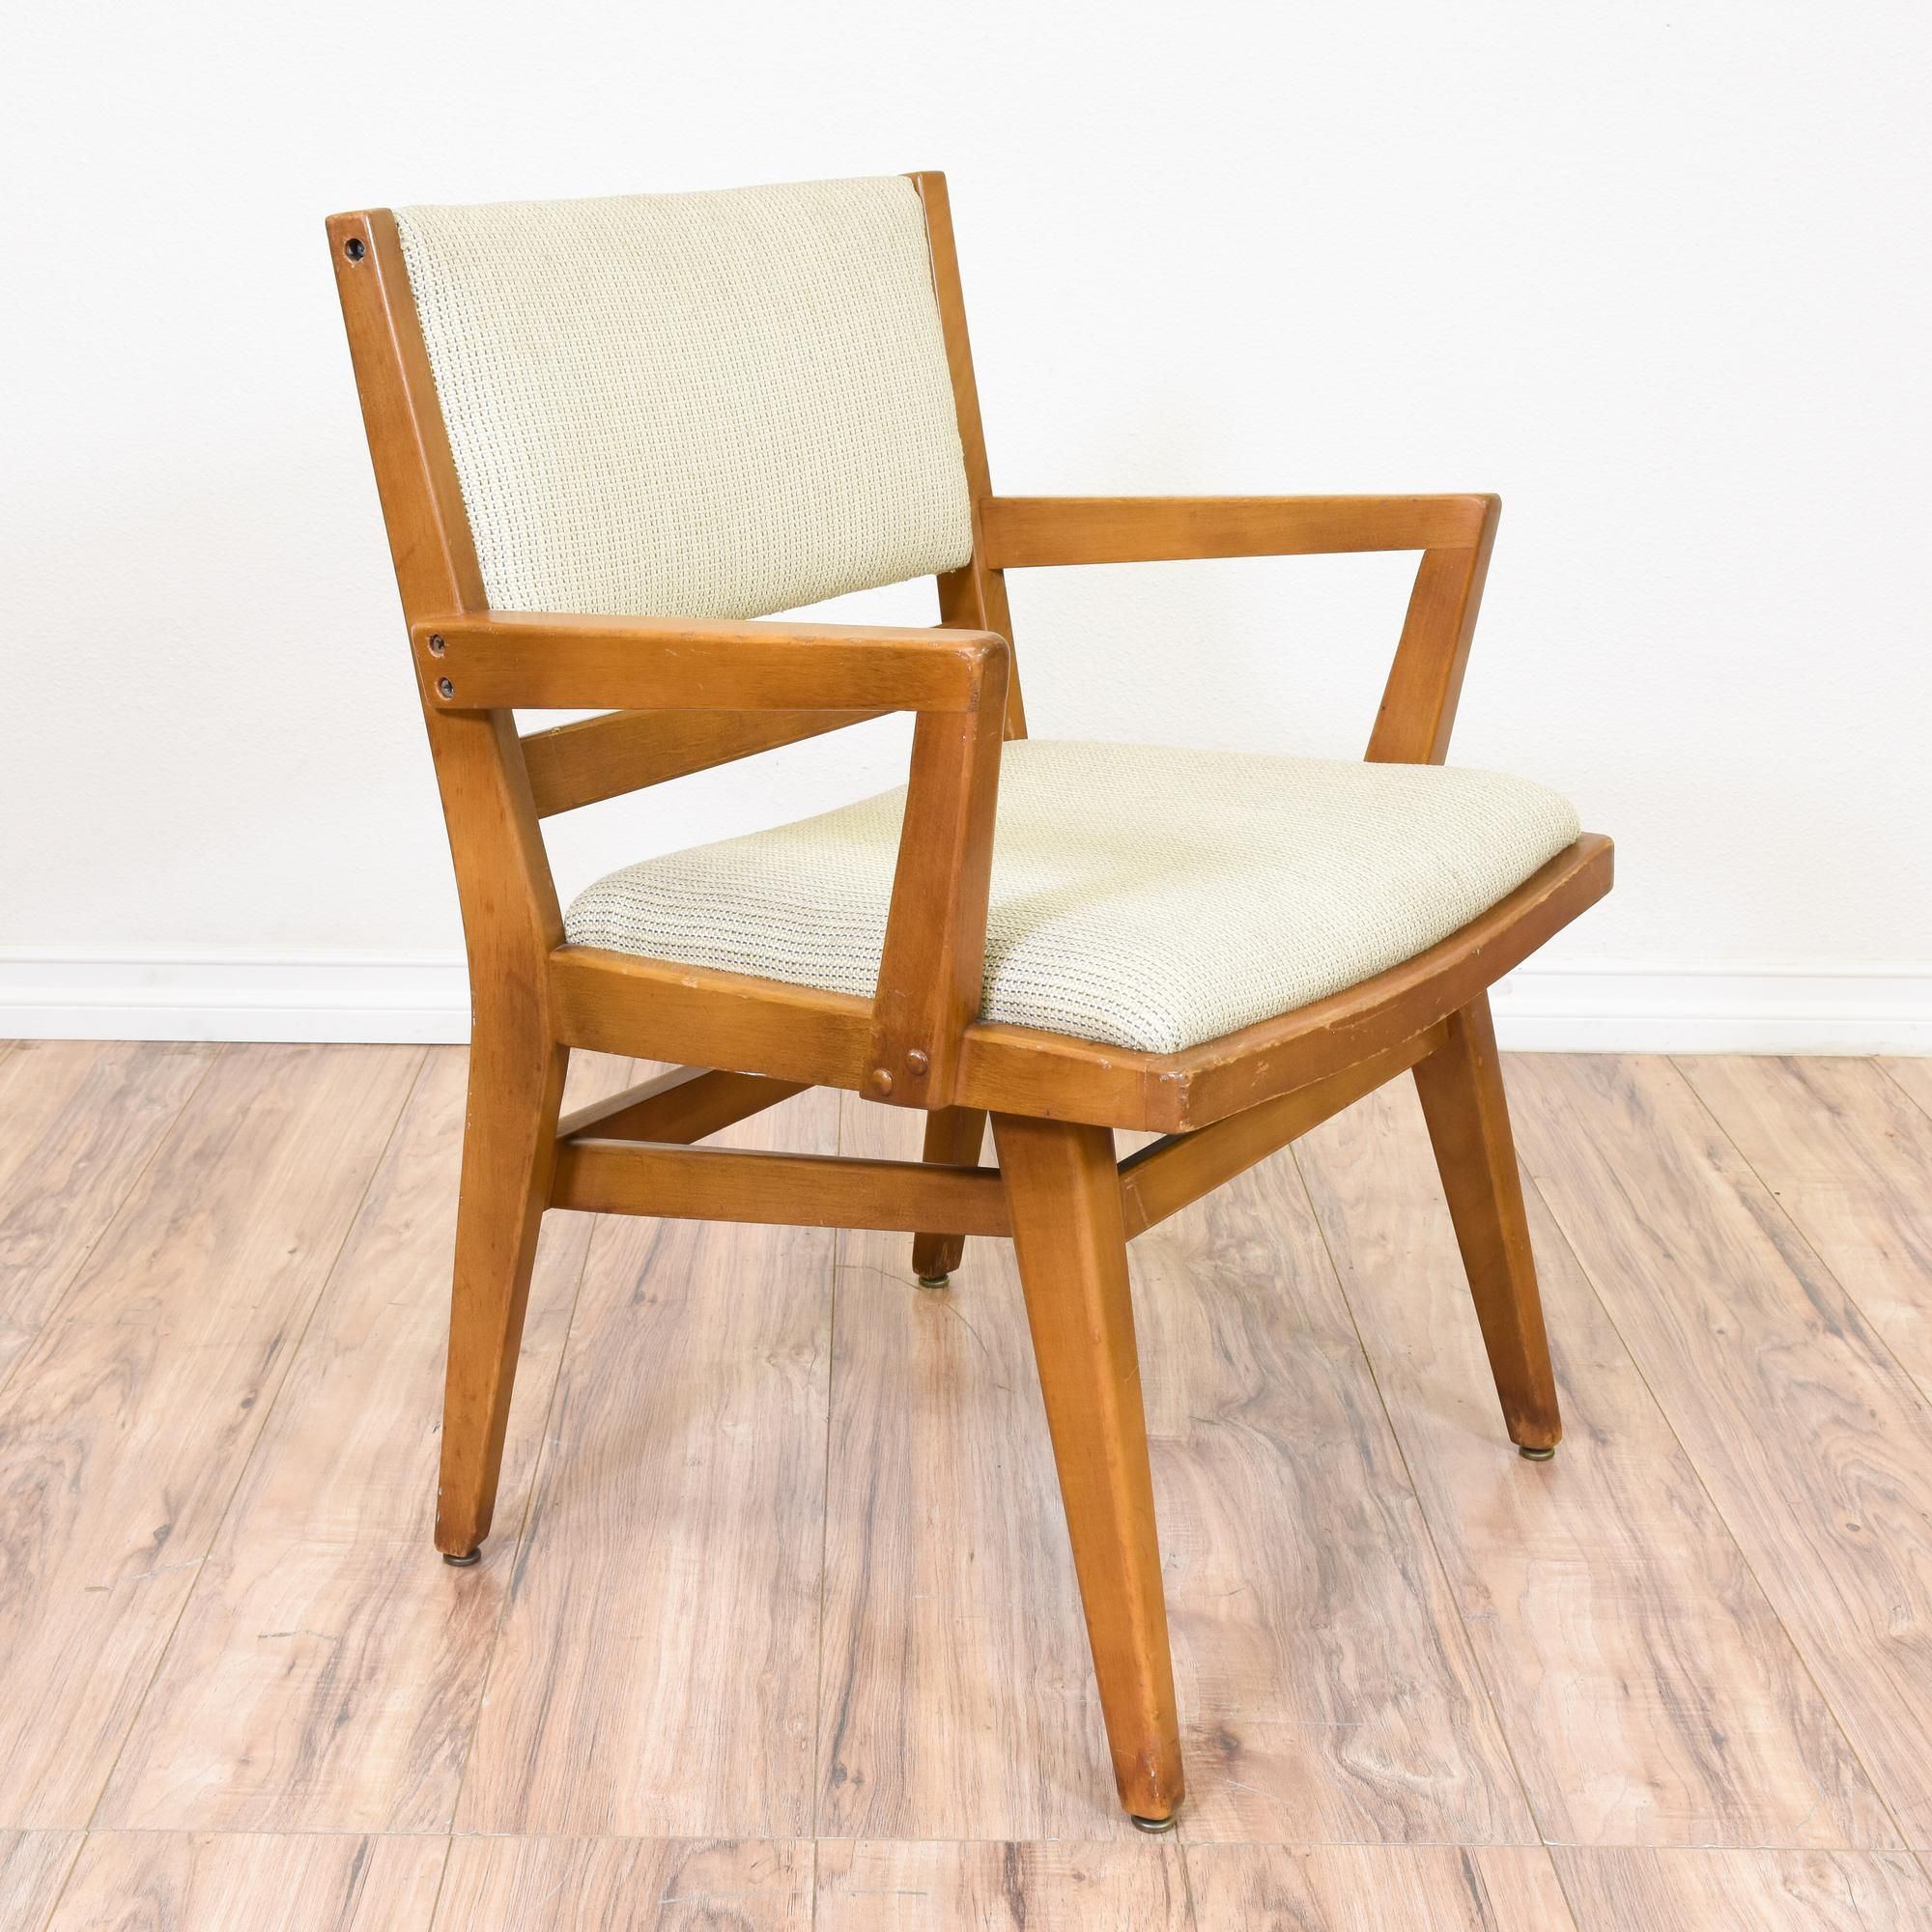 This Mid Century Modern Accent Chair Is Featured In A